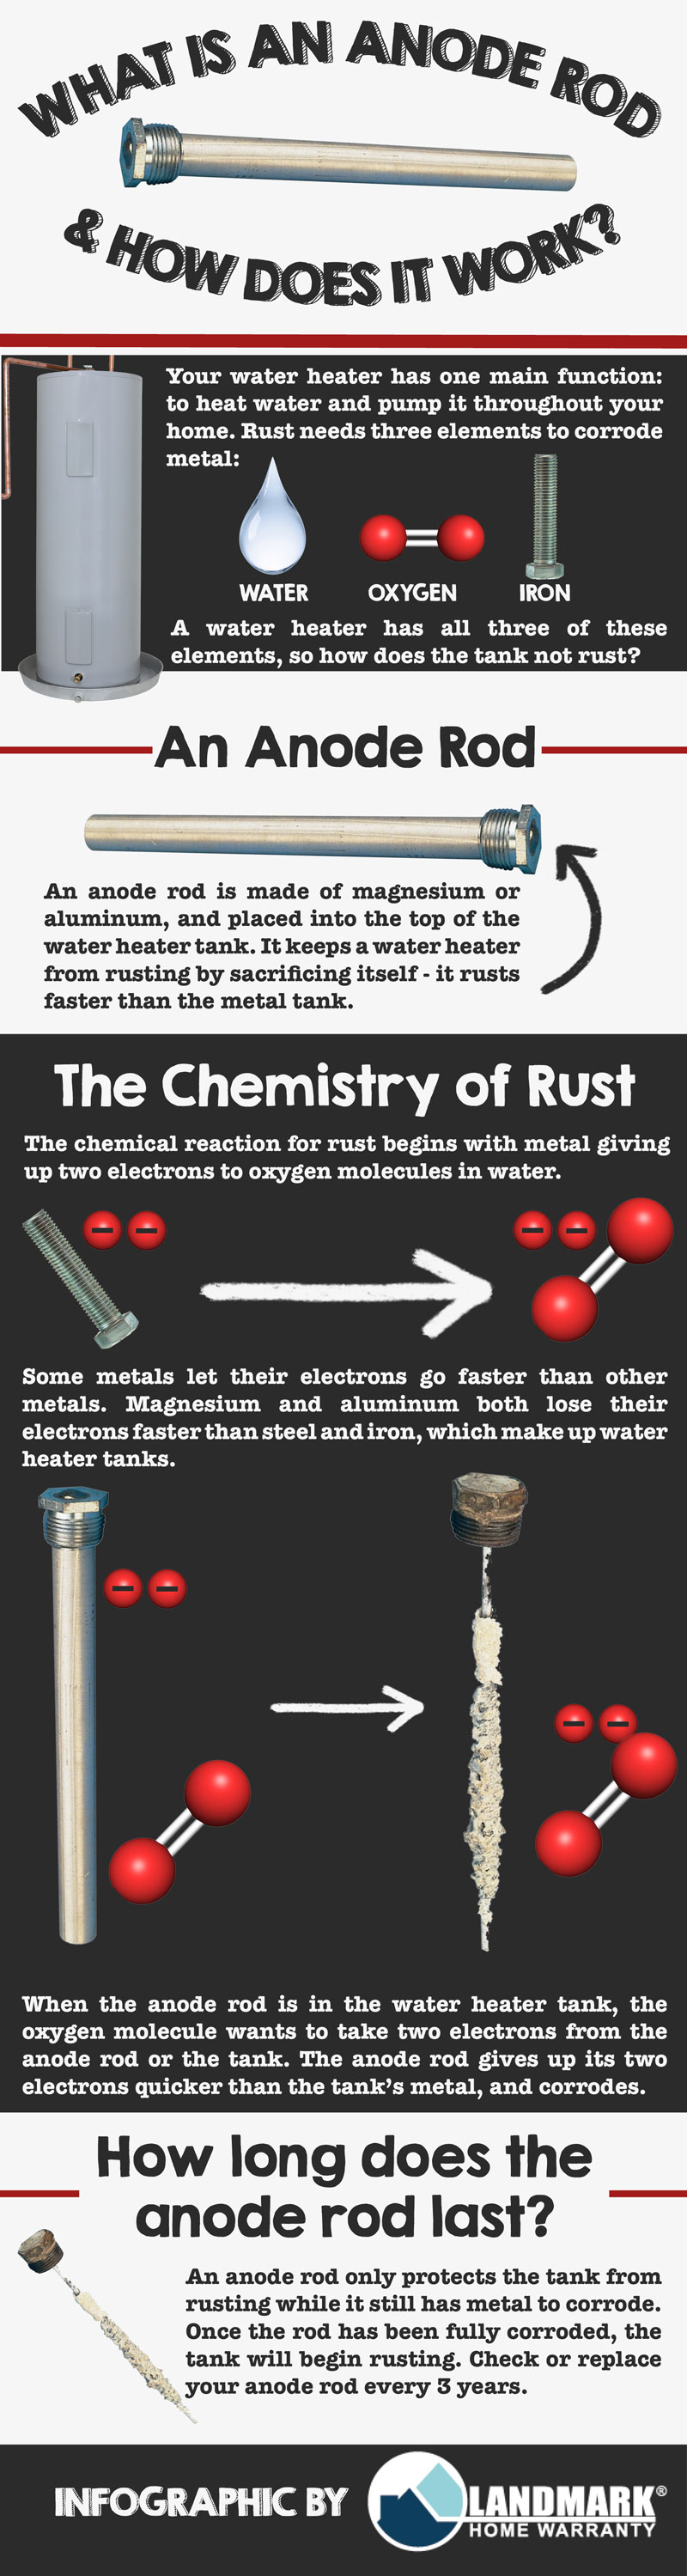 What is a water heater's anode rod and what does it do? infographic